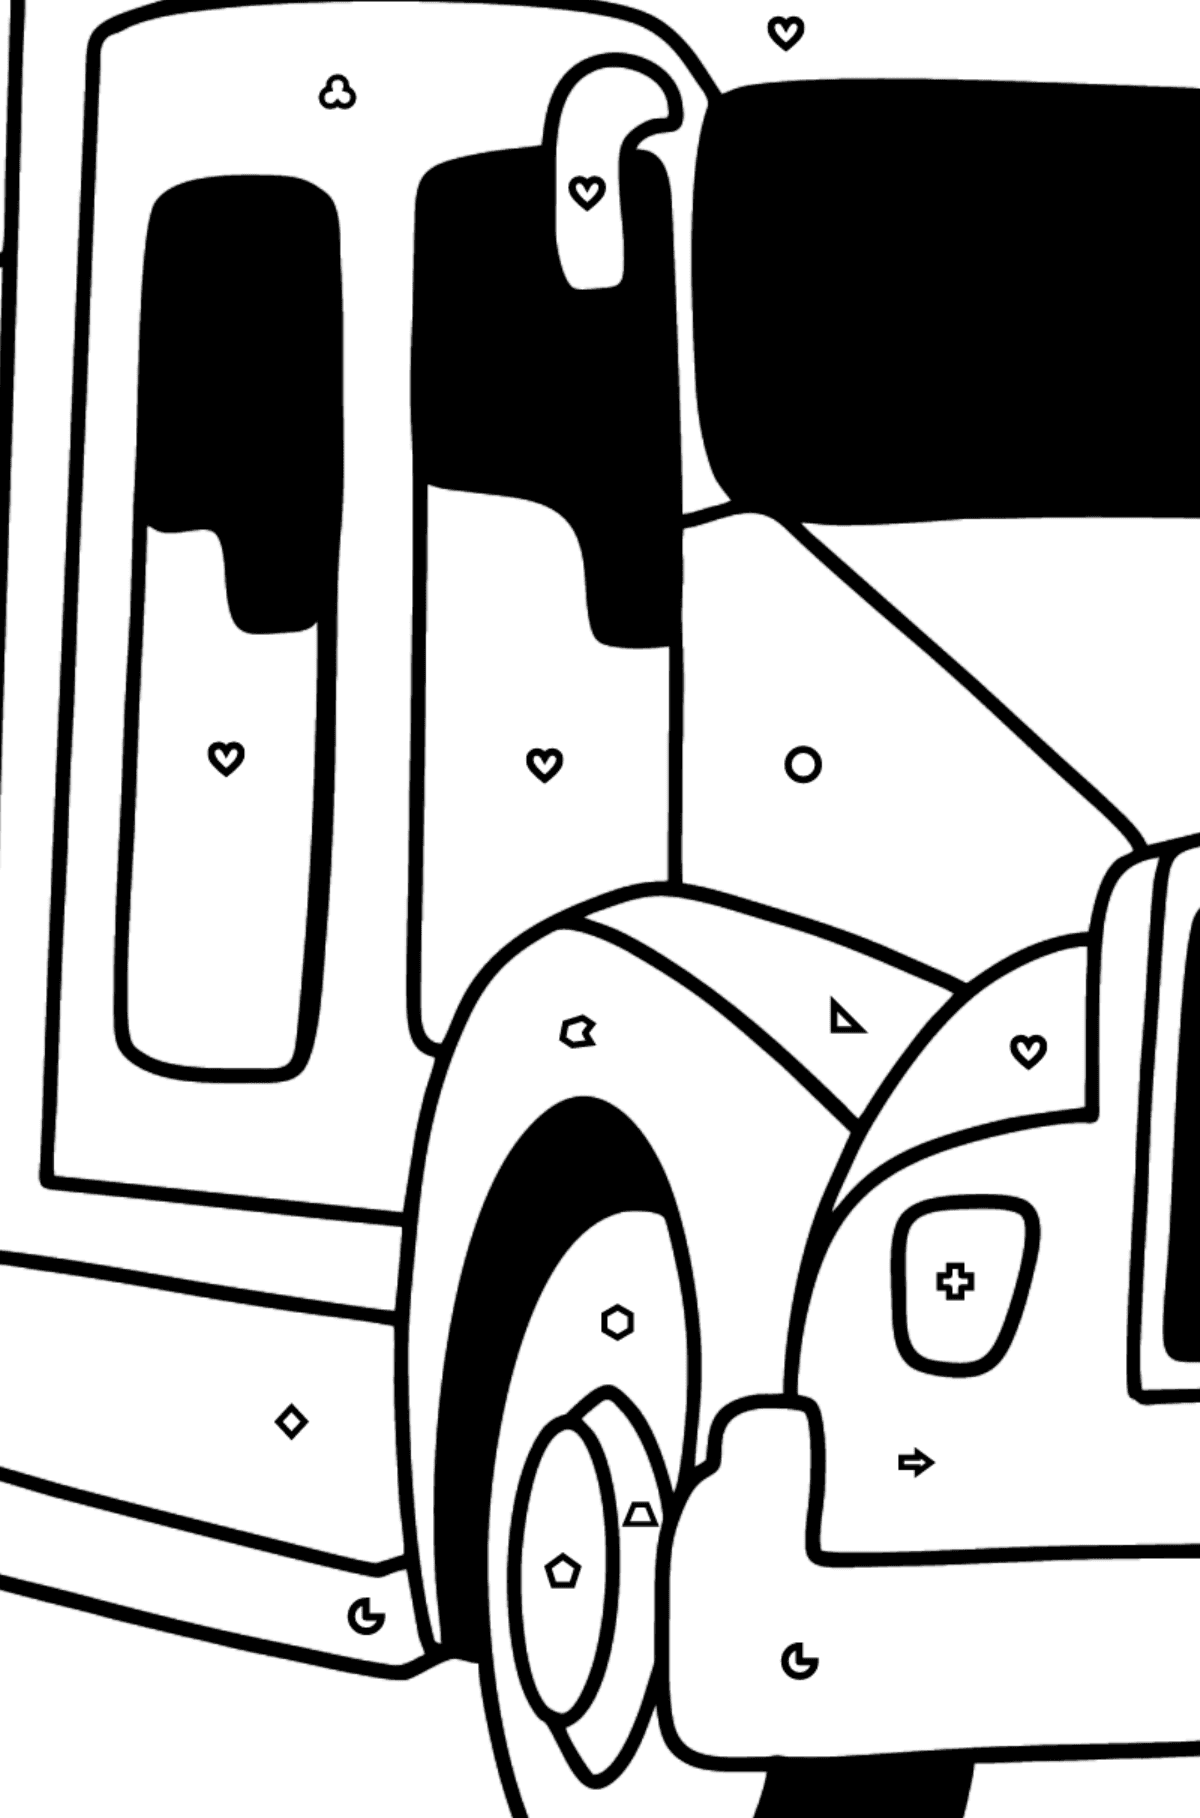 USA Fire Truck coloring page - Coloring by Geometric Shapes for Kids